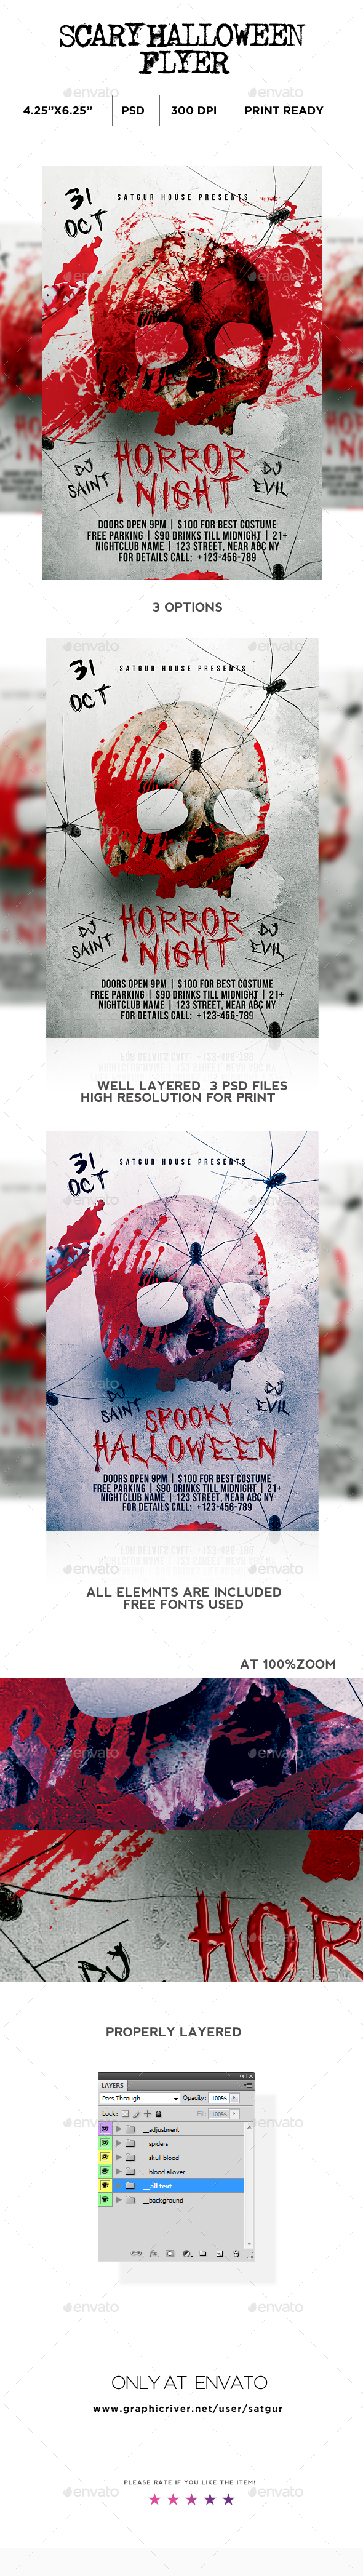 Scary Halloween Flyer V2 - Clubs & Parties Events